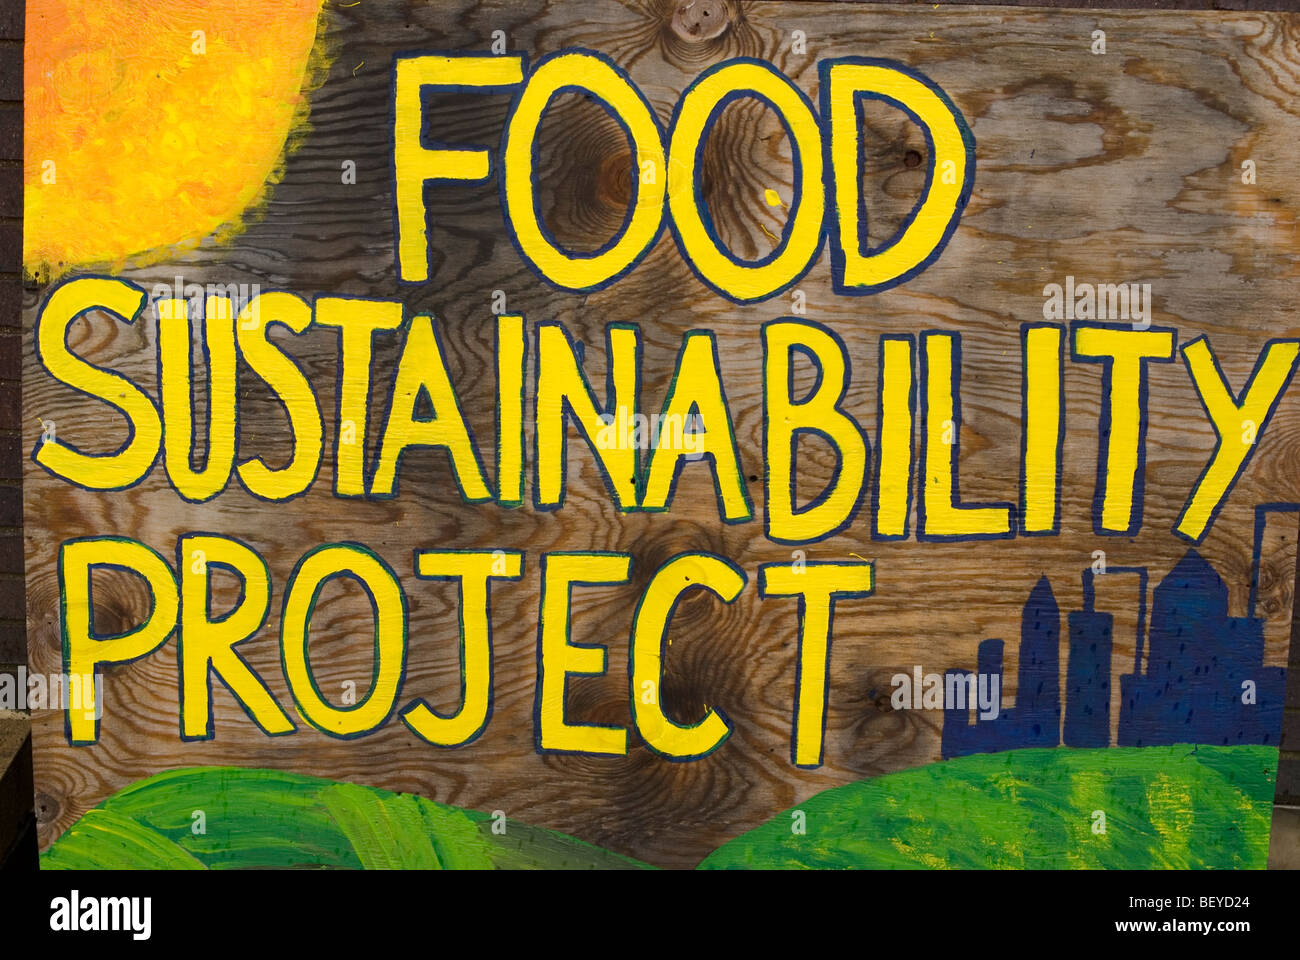 Hand painted sign for a food sustainability project, Columbia University campus, New York City - Stock Image